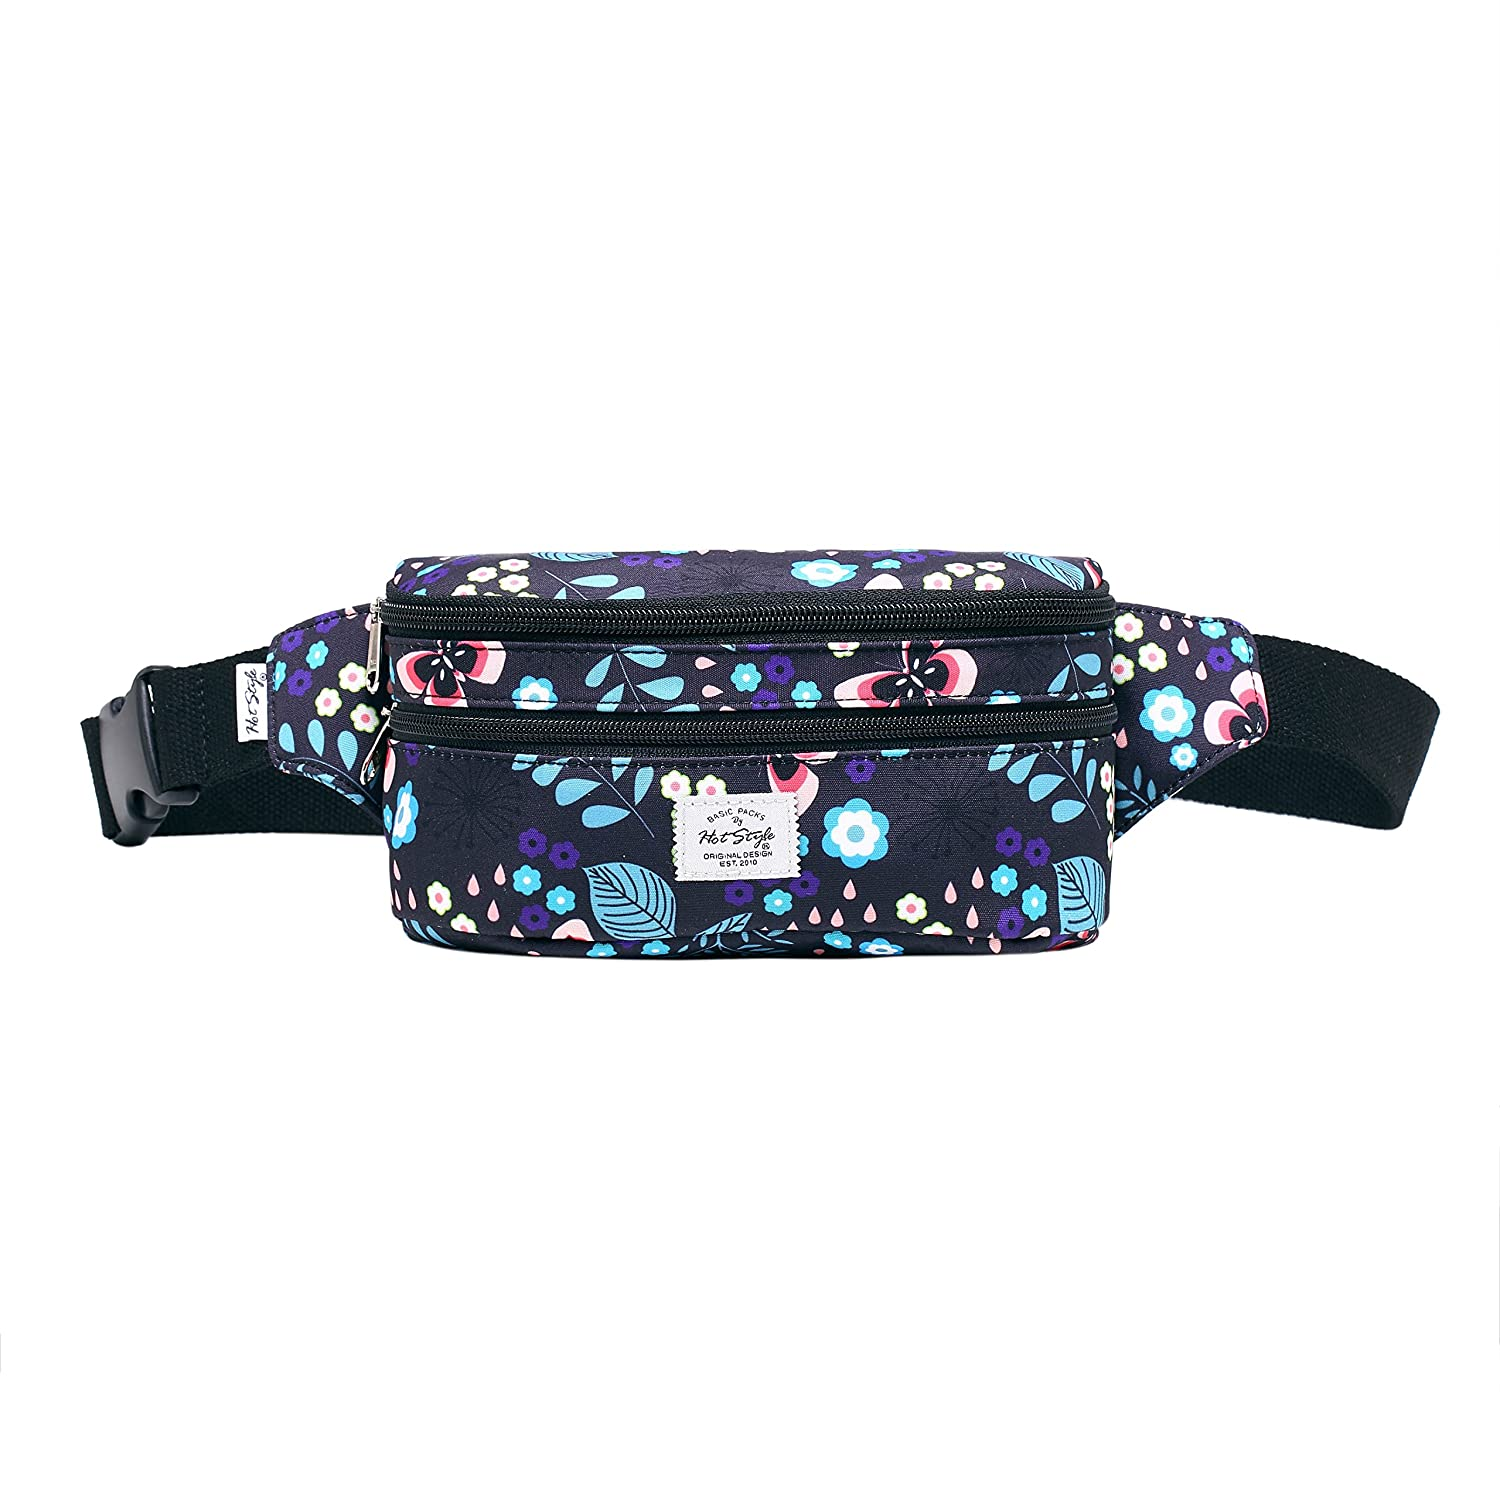 521s Fashion Waist Bag Cute Fanny Pack | 20x6x11 cm | Polkadots HTS021A